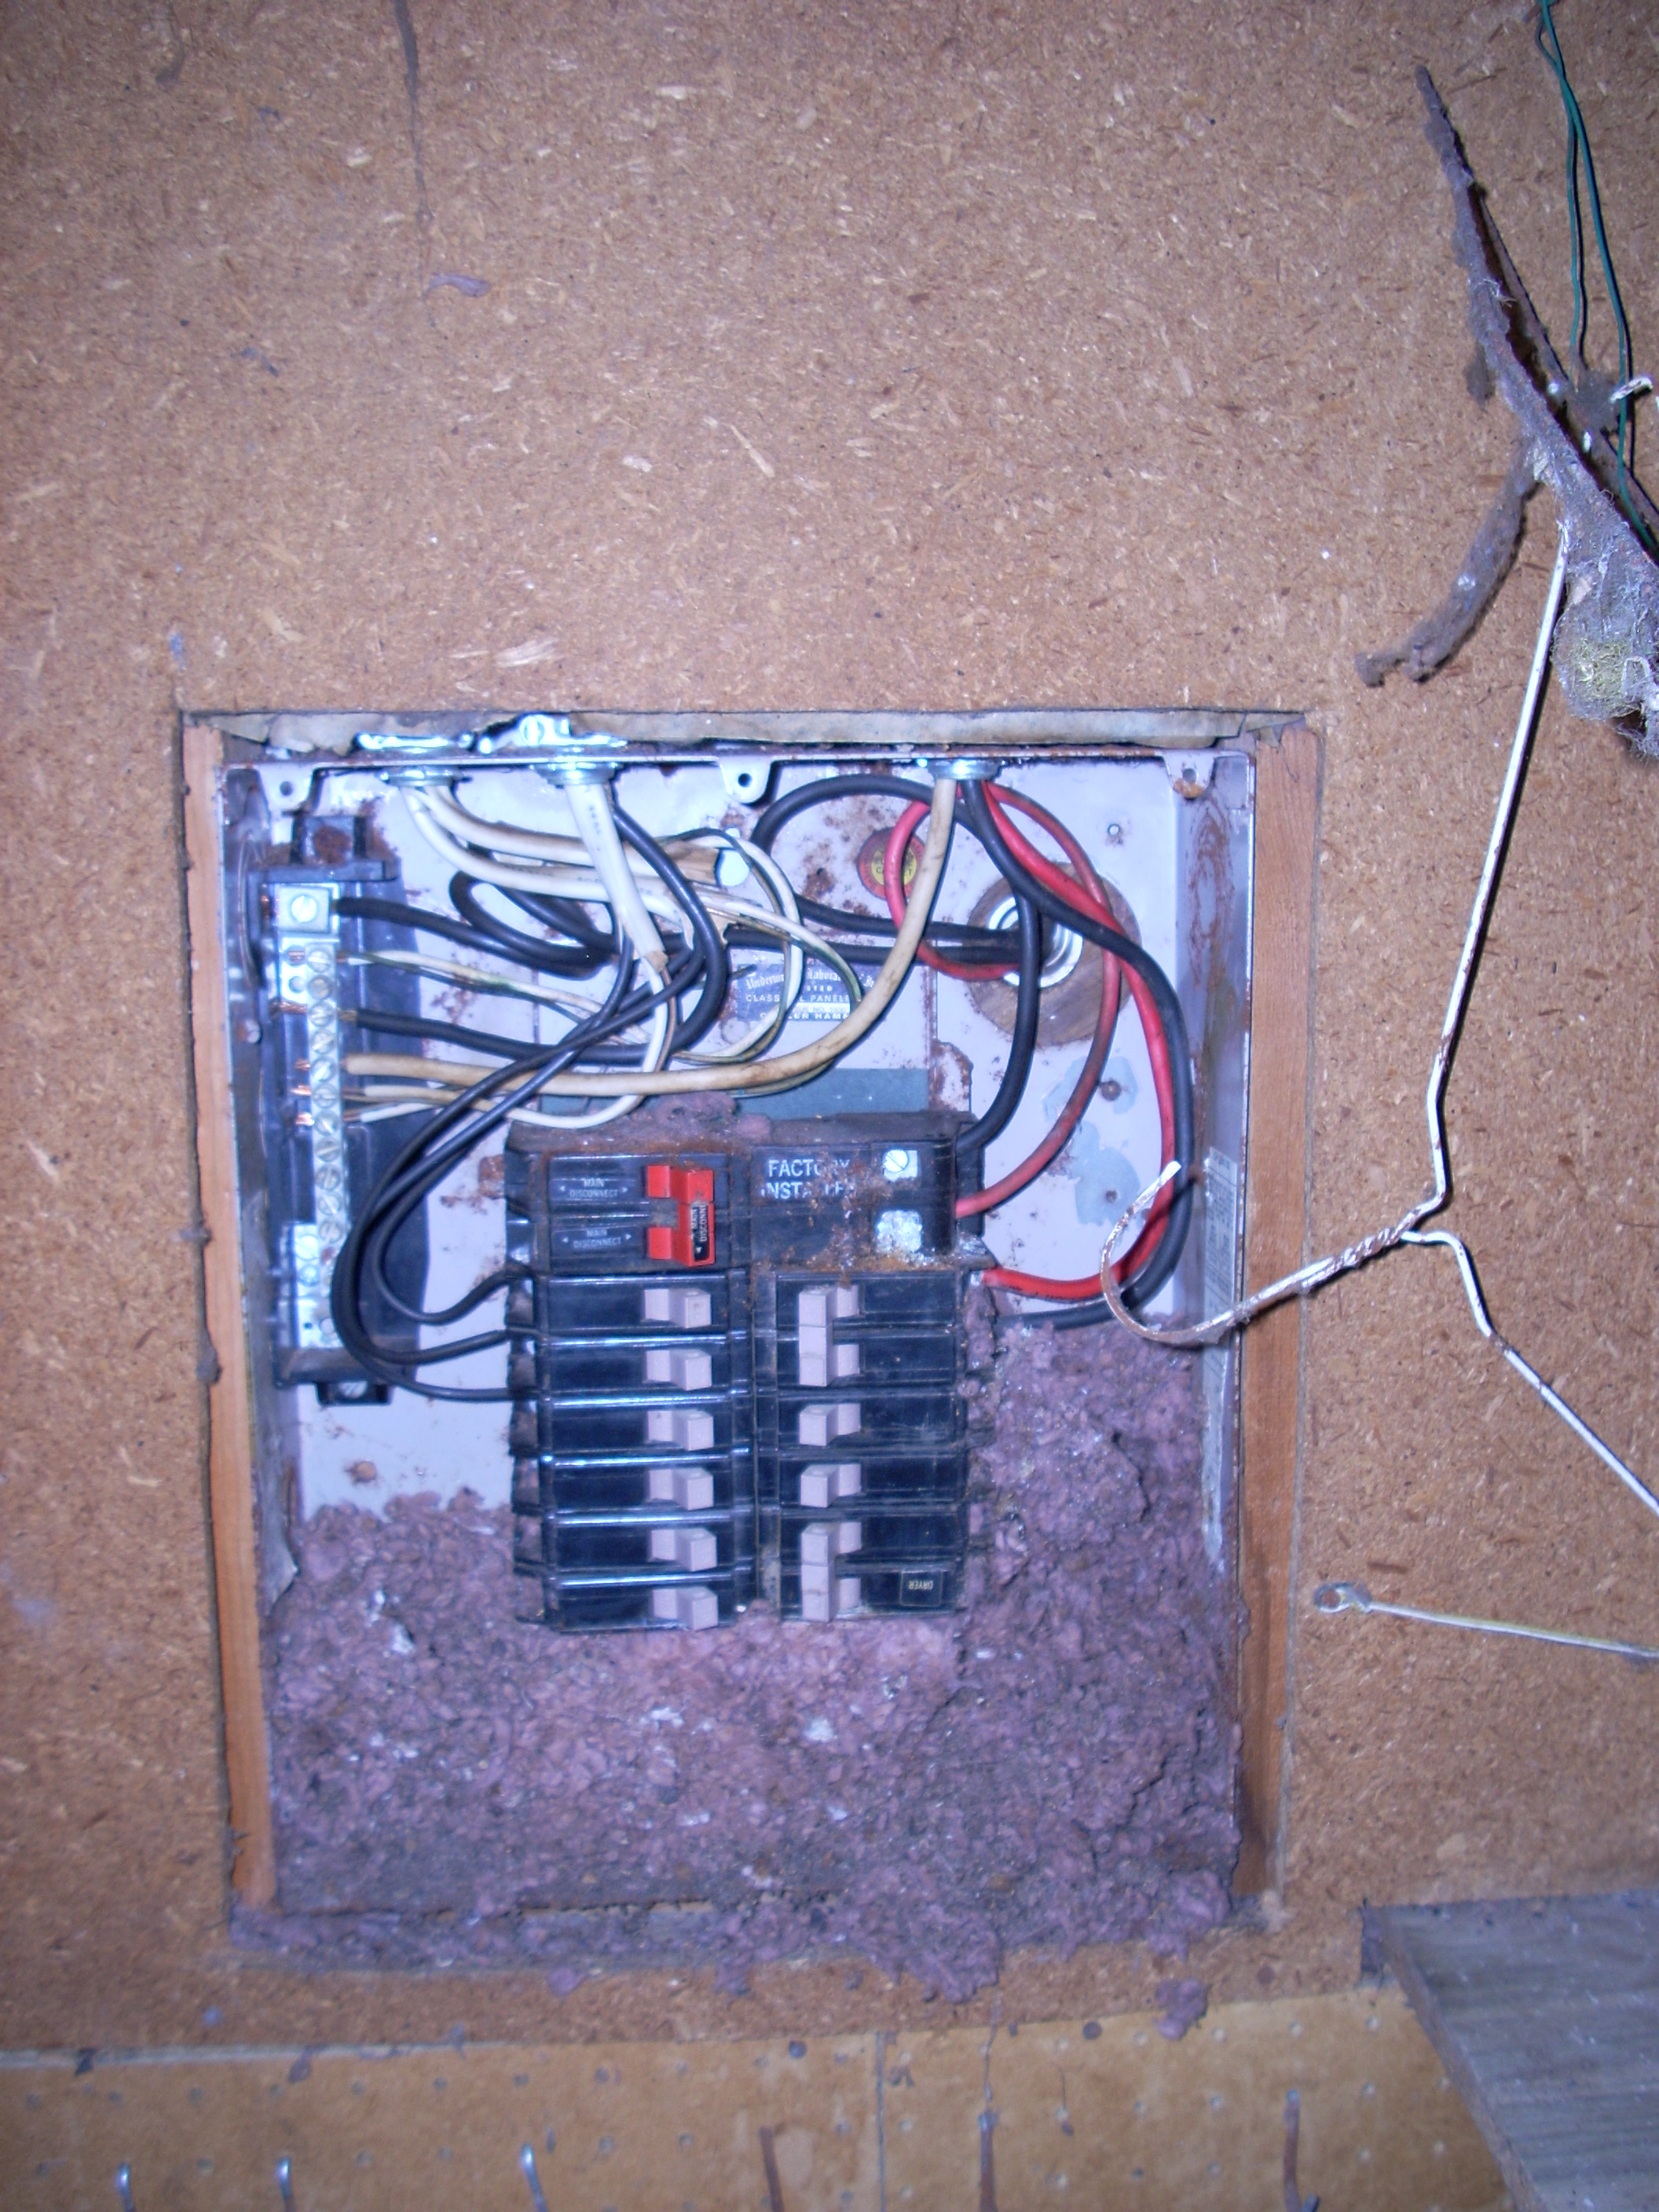 Electrical Service Panels Vancouver Washington Electrician Wiring Panel Diagram A Photo Of An Located In Shop With Rats Nest Inside